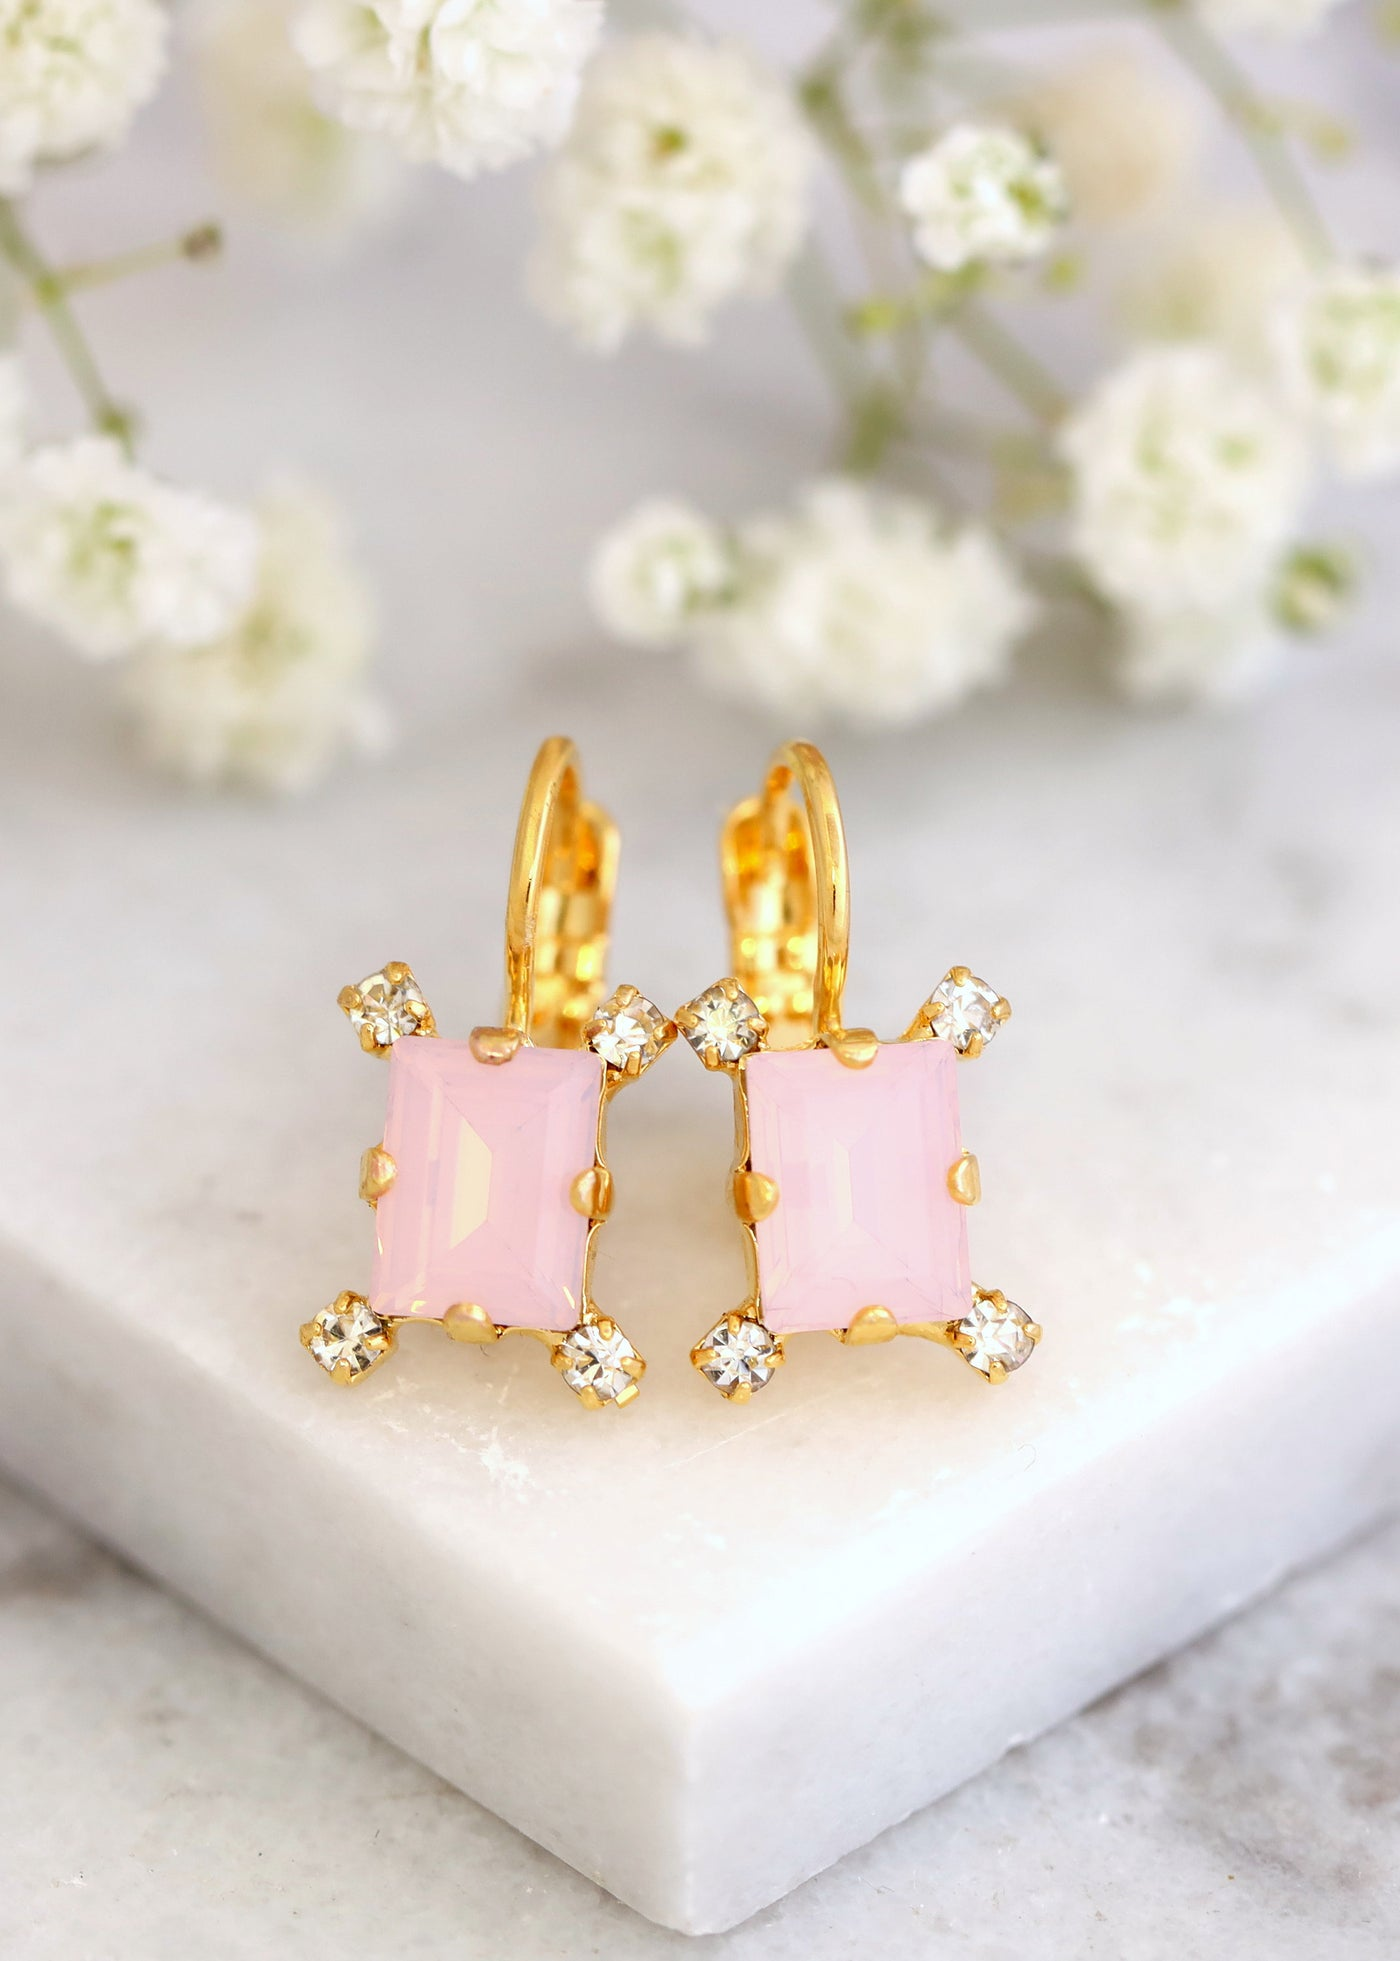 Pink Drop Earrings, Light Pink Crystal Earrings, Gift for her, Gift For Her, Pink Opal Earrings, Powder Pink Drop Swarovski Bridal Earrings